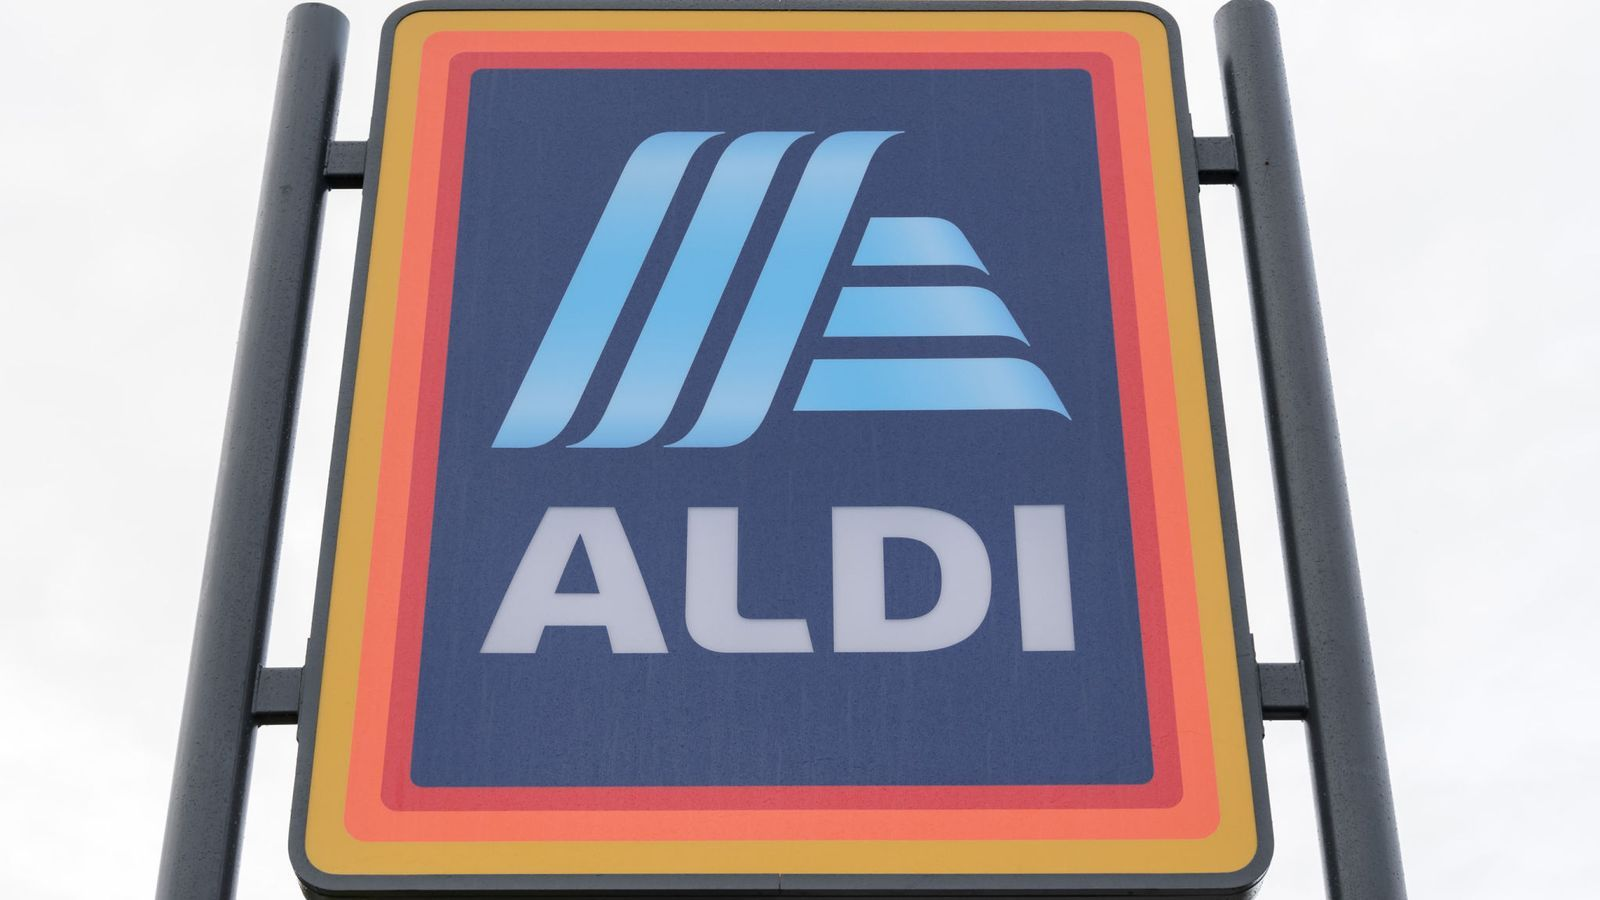 Aldi to increase employee pay and hire 3,800 additional workers | Business news